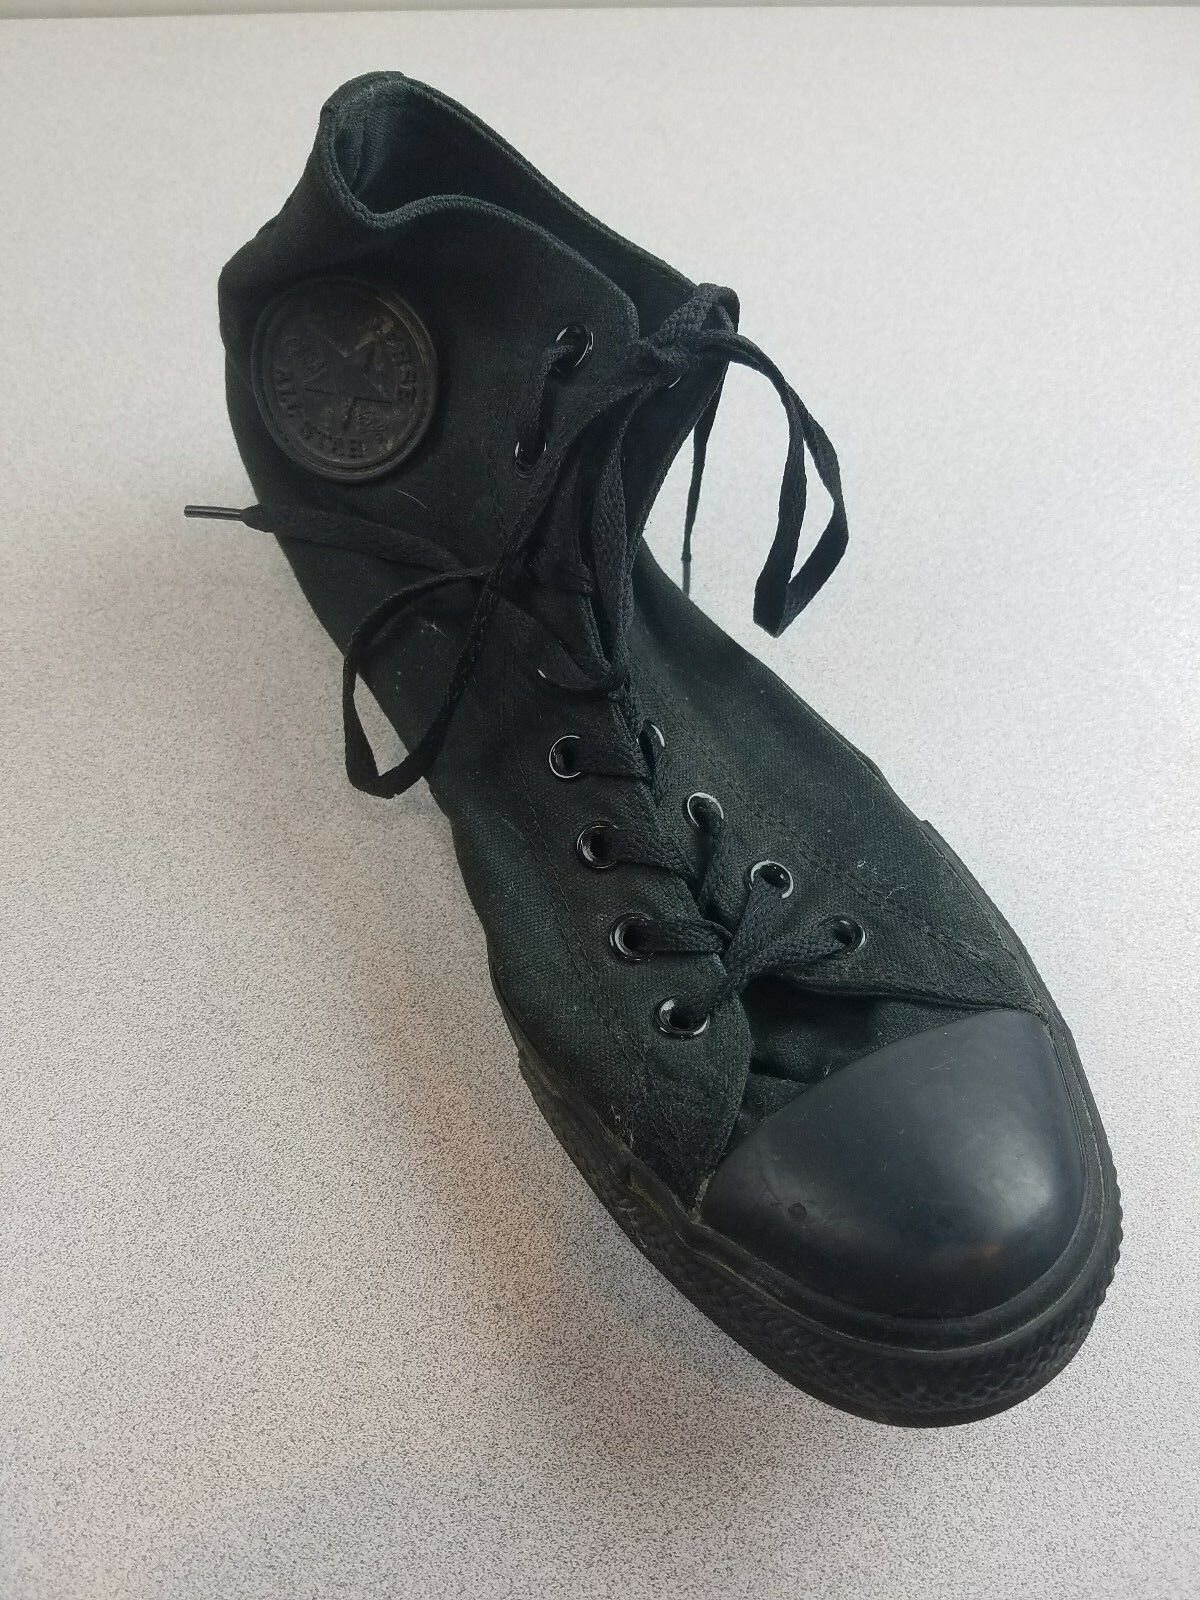 Chuck Taylor Converse All Star Mens Shoe Sz 11 SHOE Womens 13 Amputee LEFT SHOE 11 Only cdb670